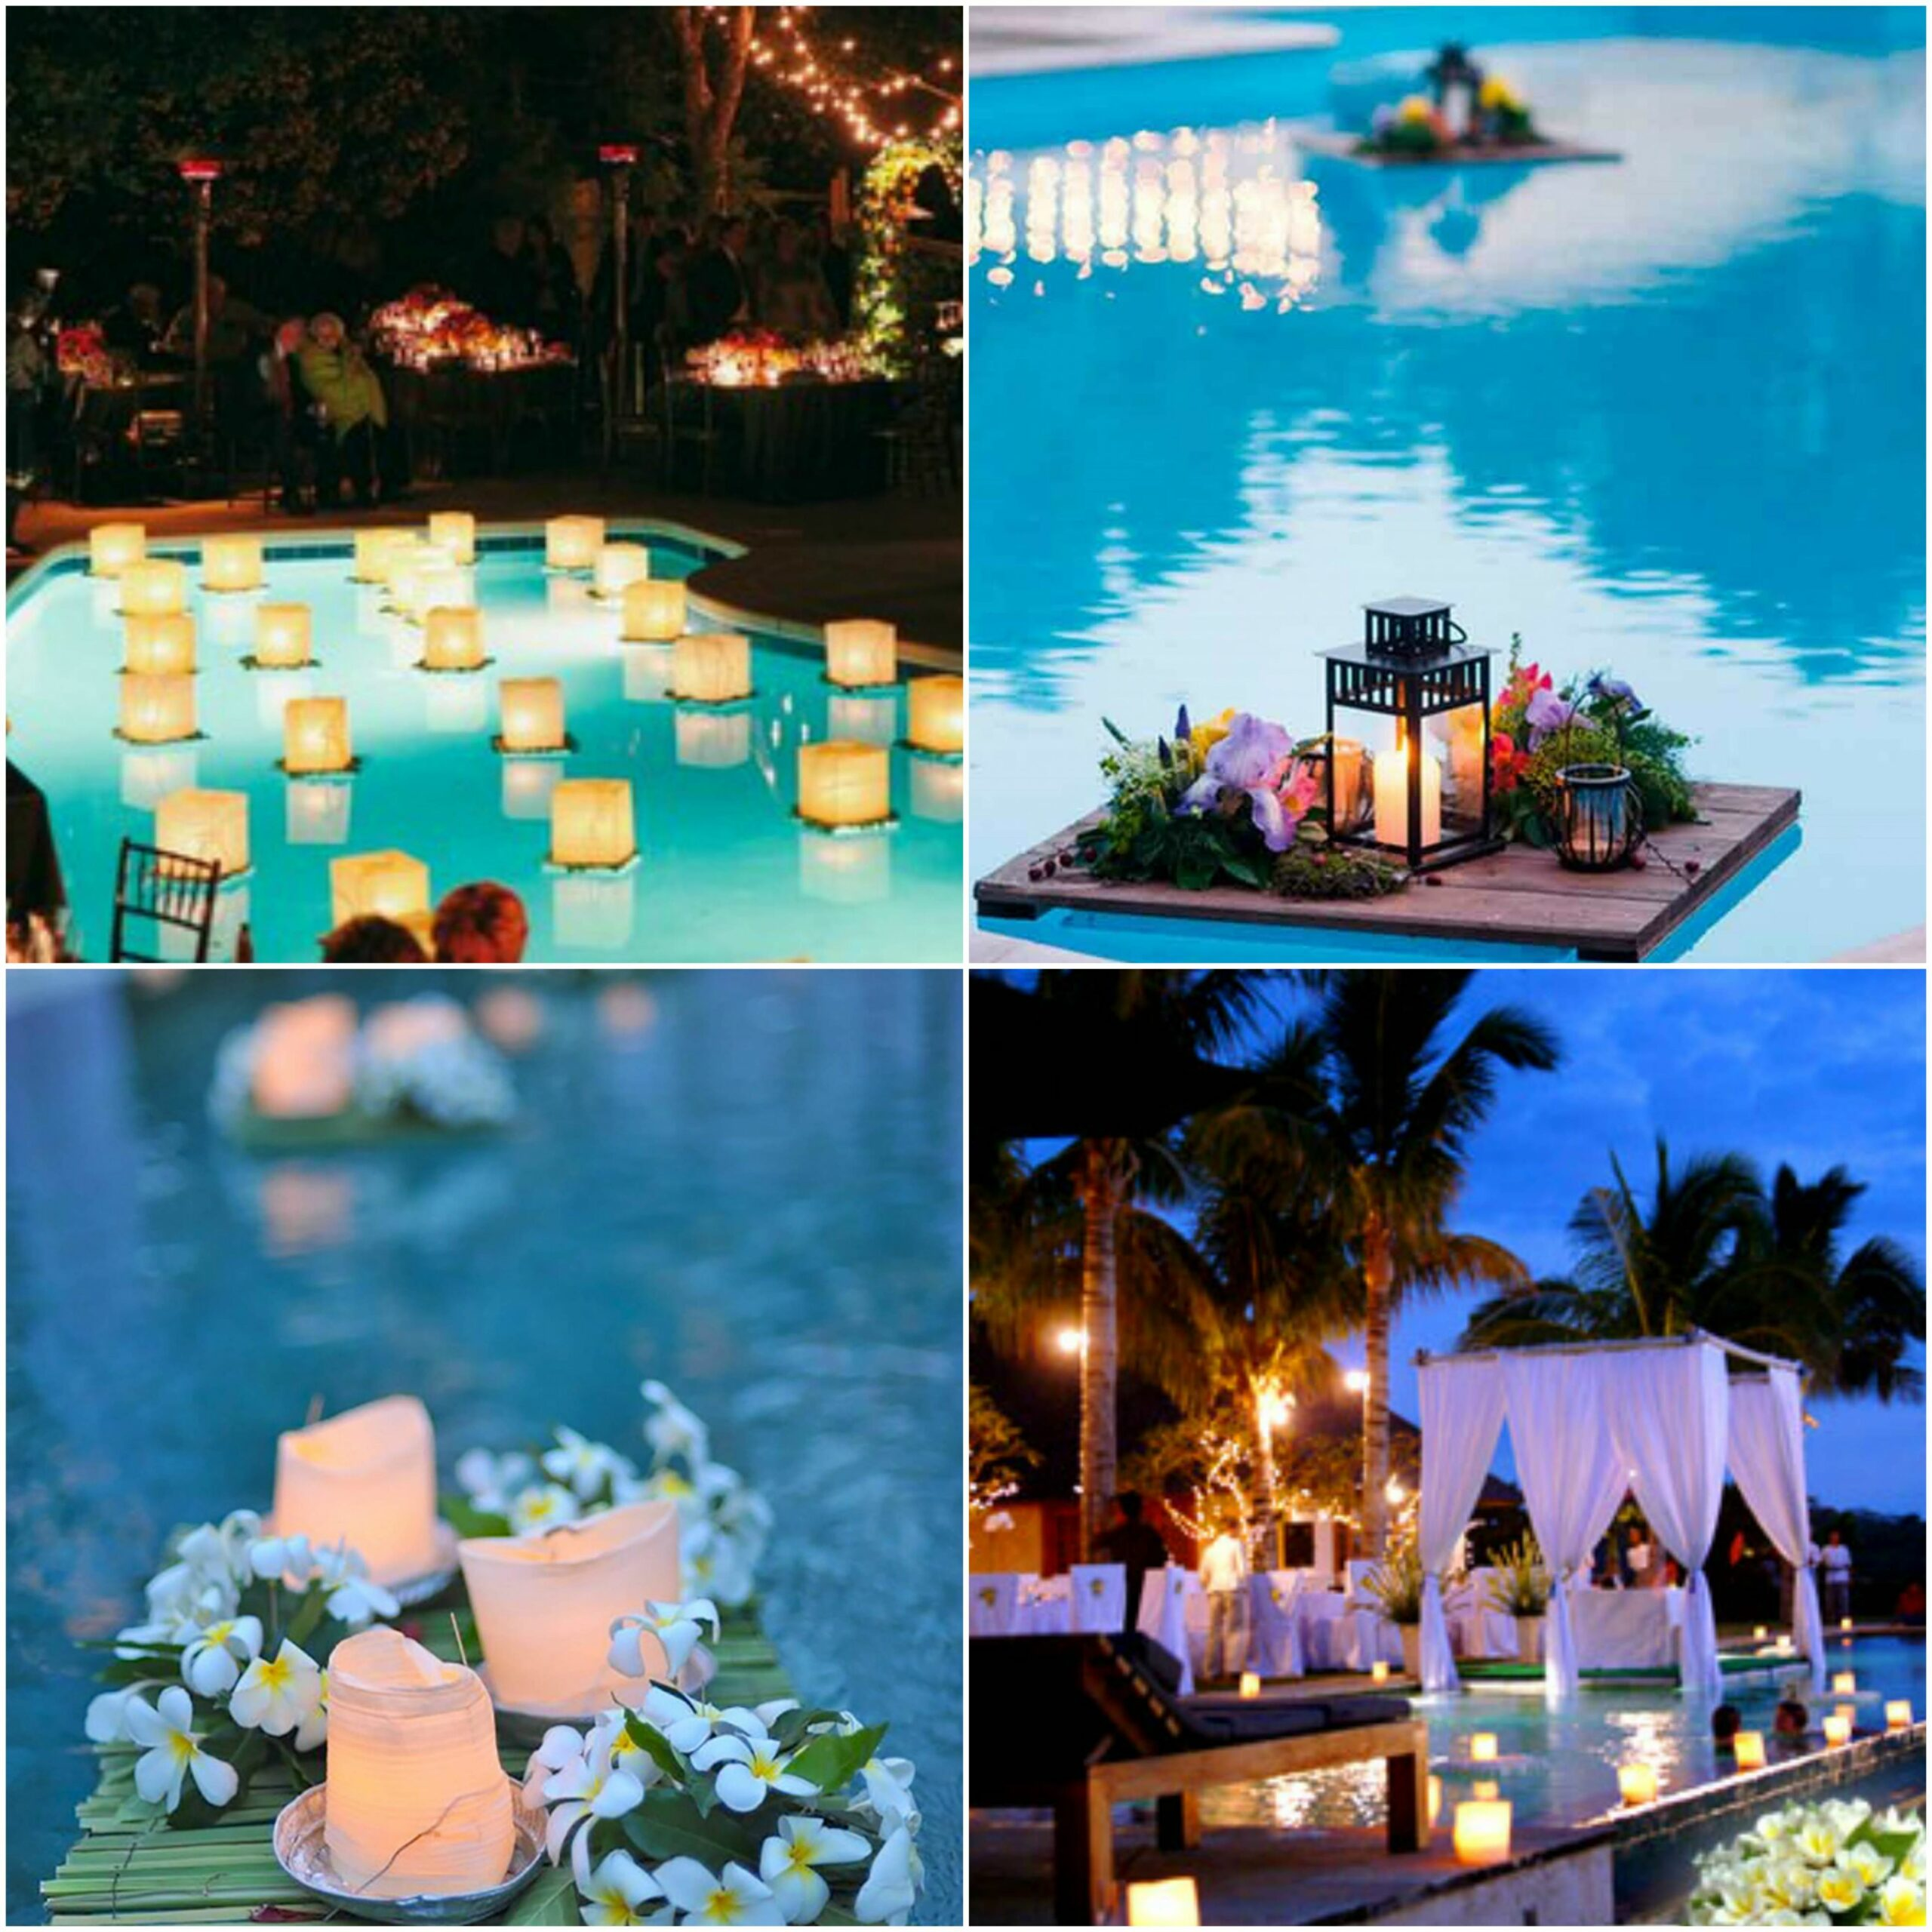 Top Poolside Decor Ideas For Your Wedding Pool Party! | Dubai ...